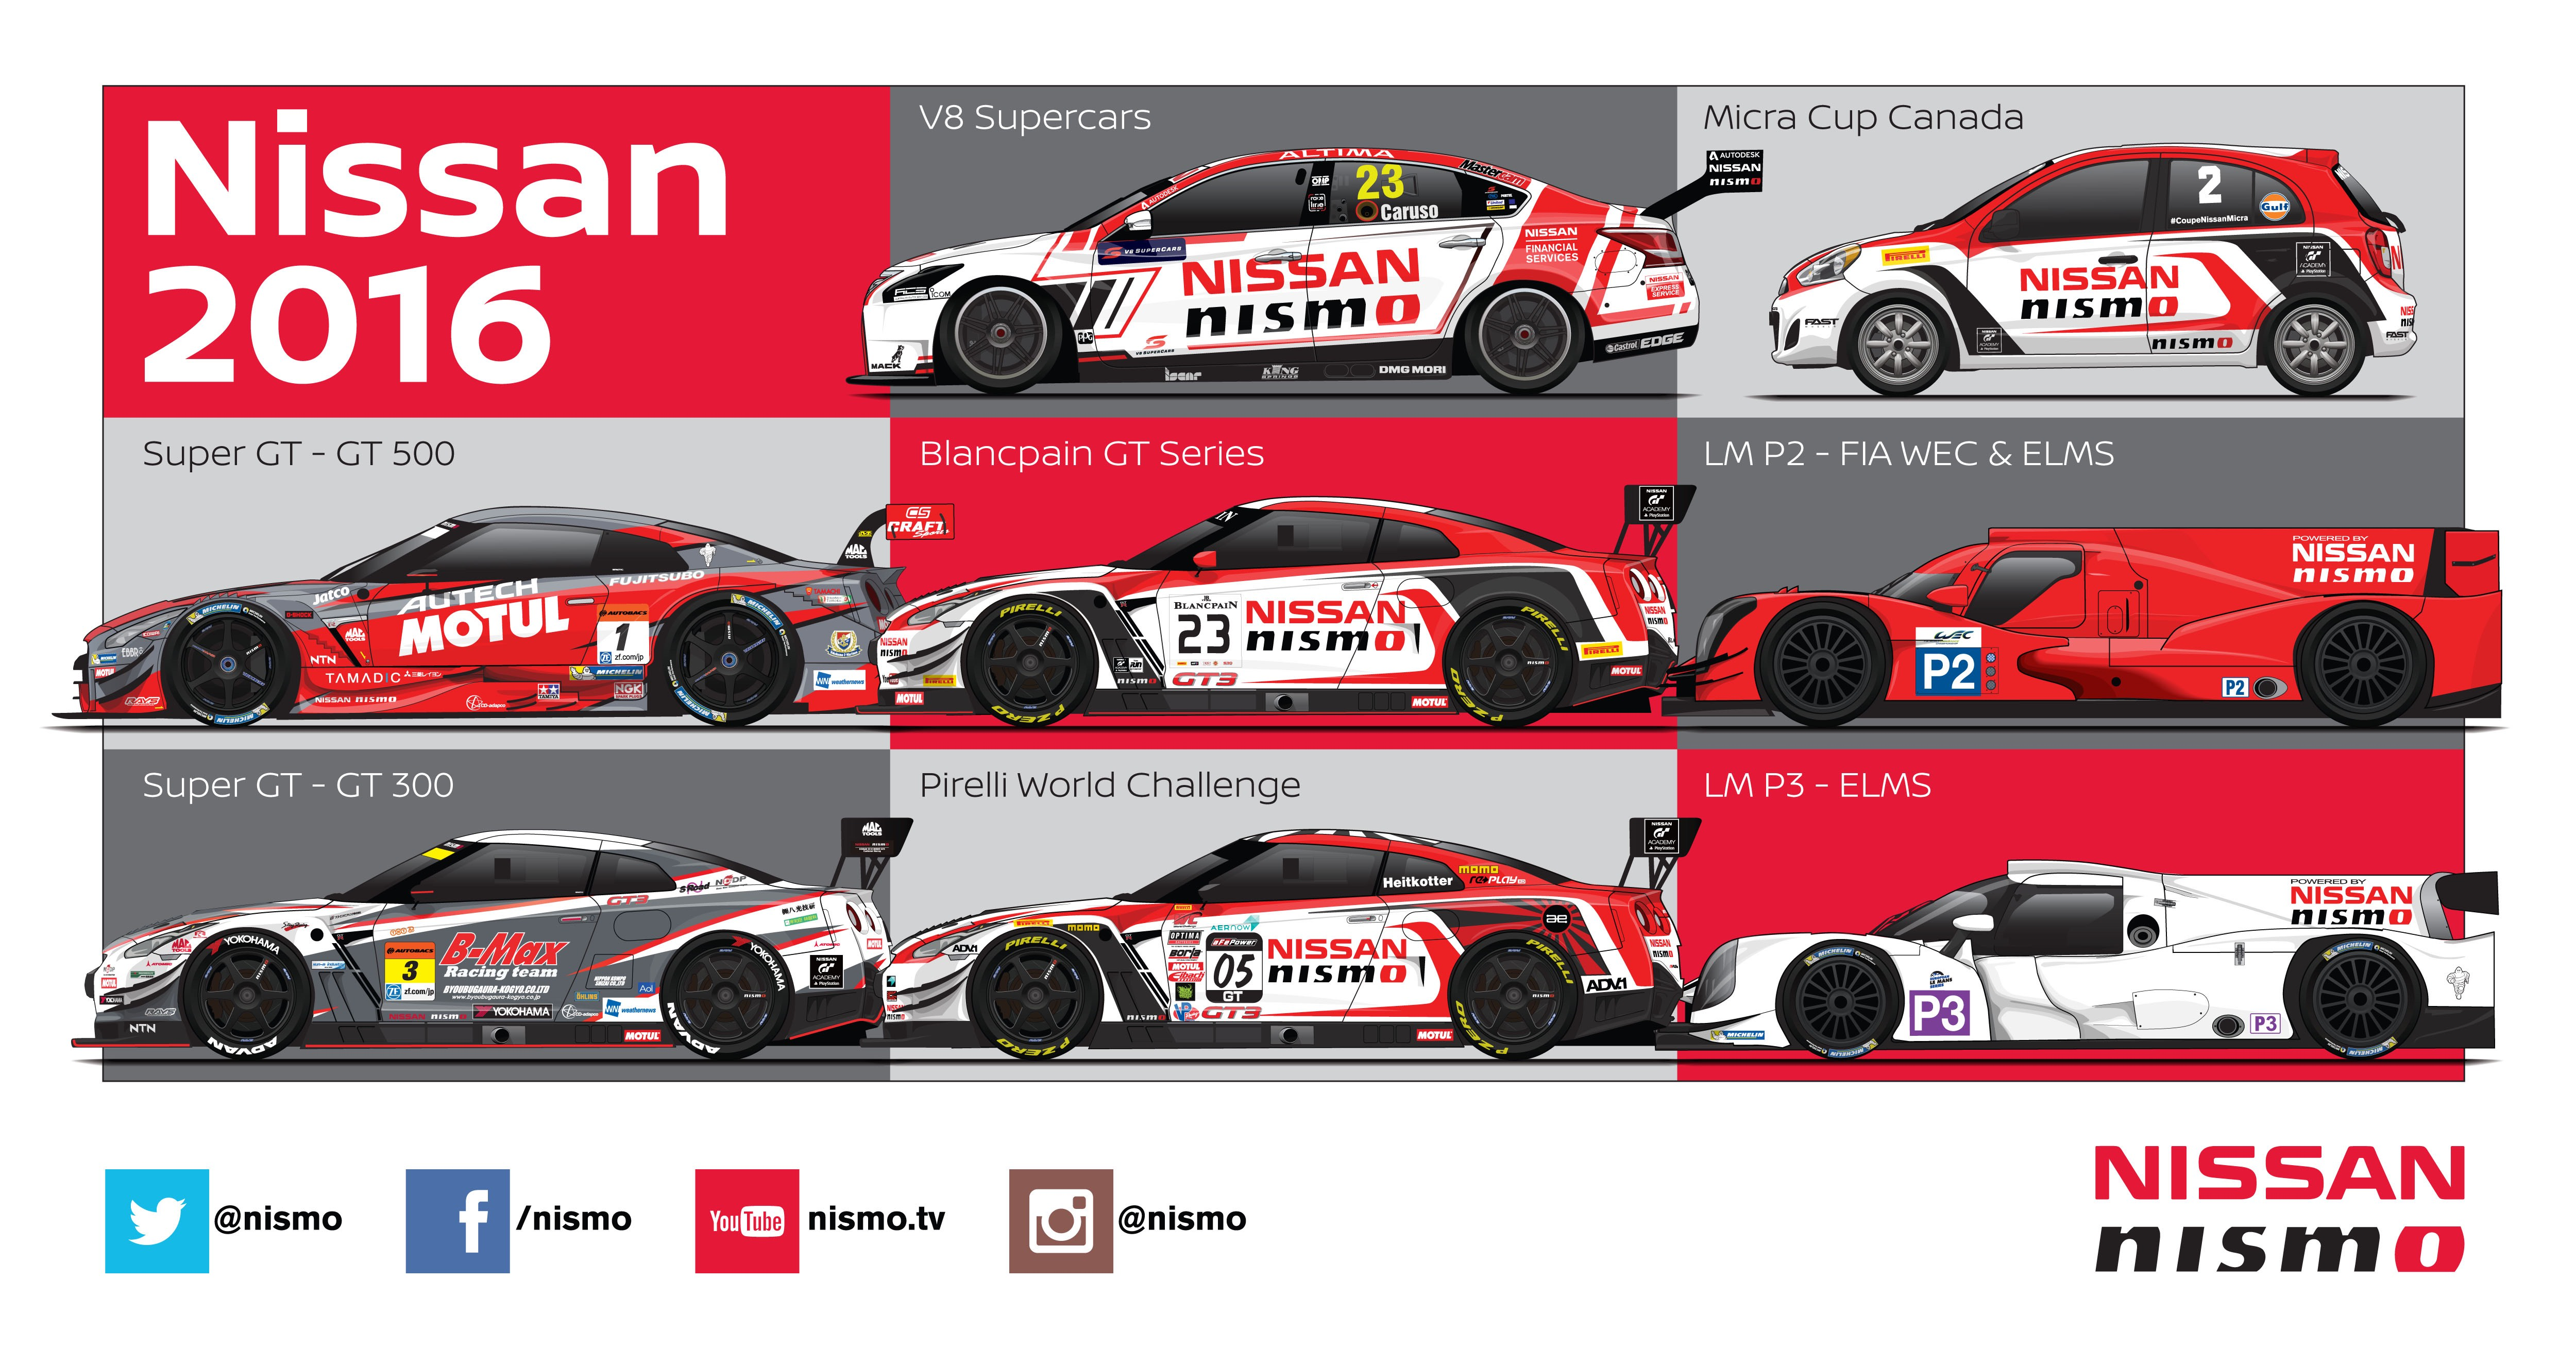 Drawn race car car design Nissan NISMO illiustrations  Design